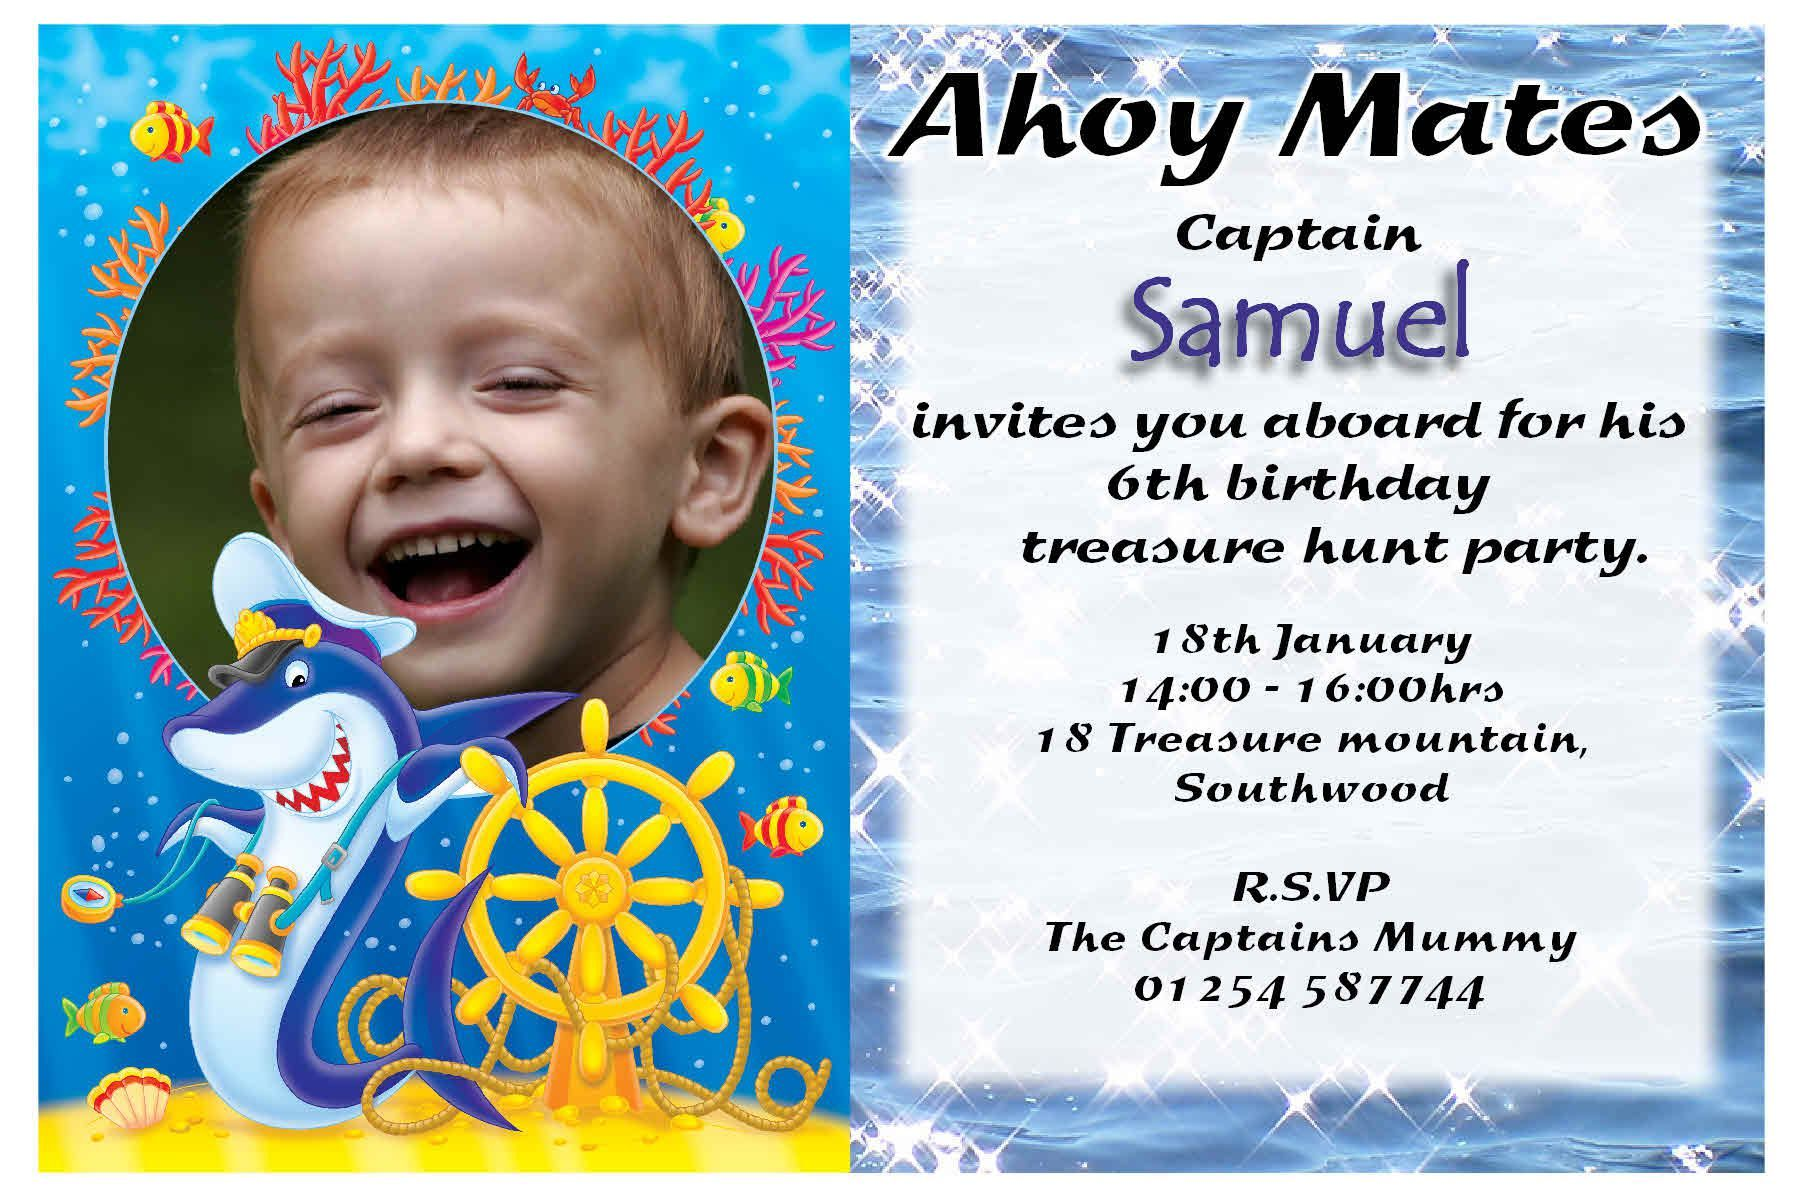 Christeninginvitationwordingsampleuk Baptism Invitations - Birthday invitation and christening